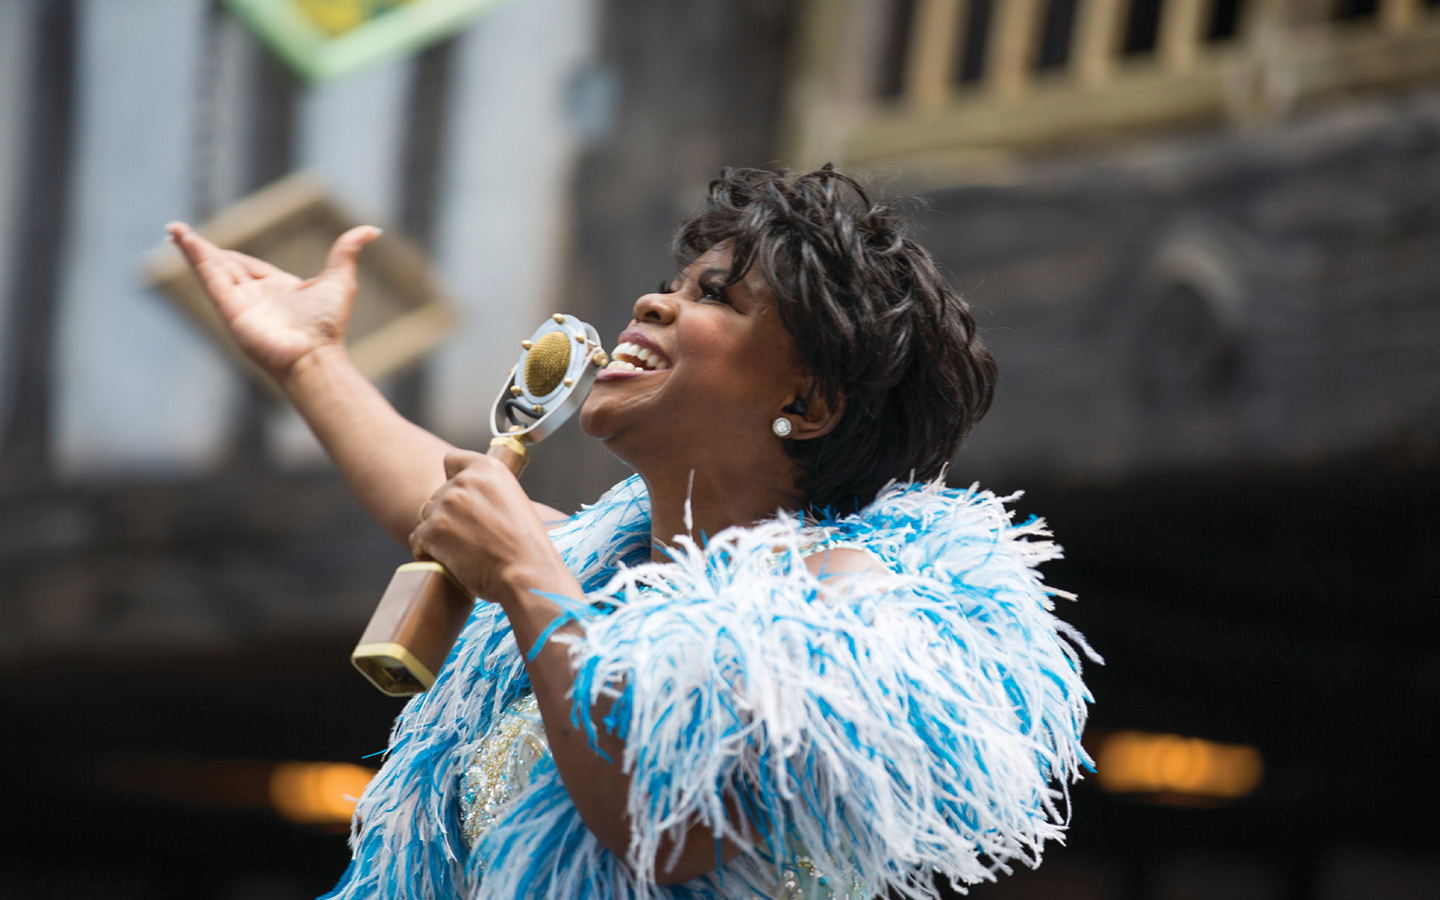 Celestina Warbeck and the Banshees in The Wizarding World of Harry Potter